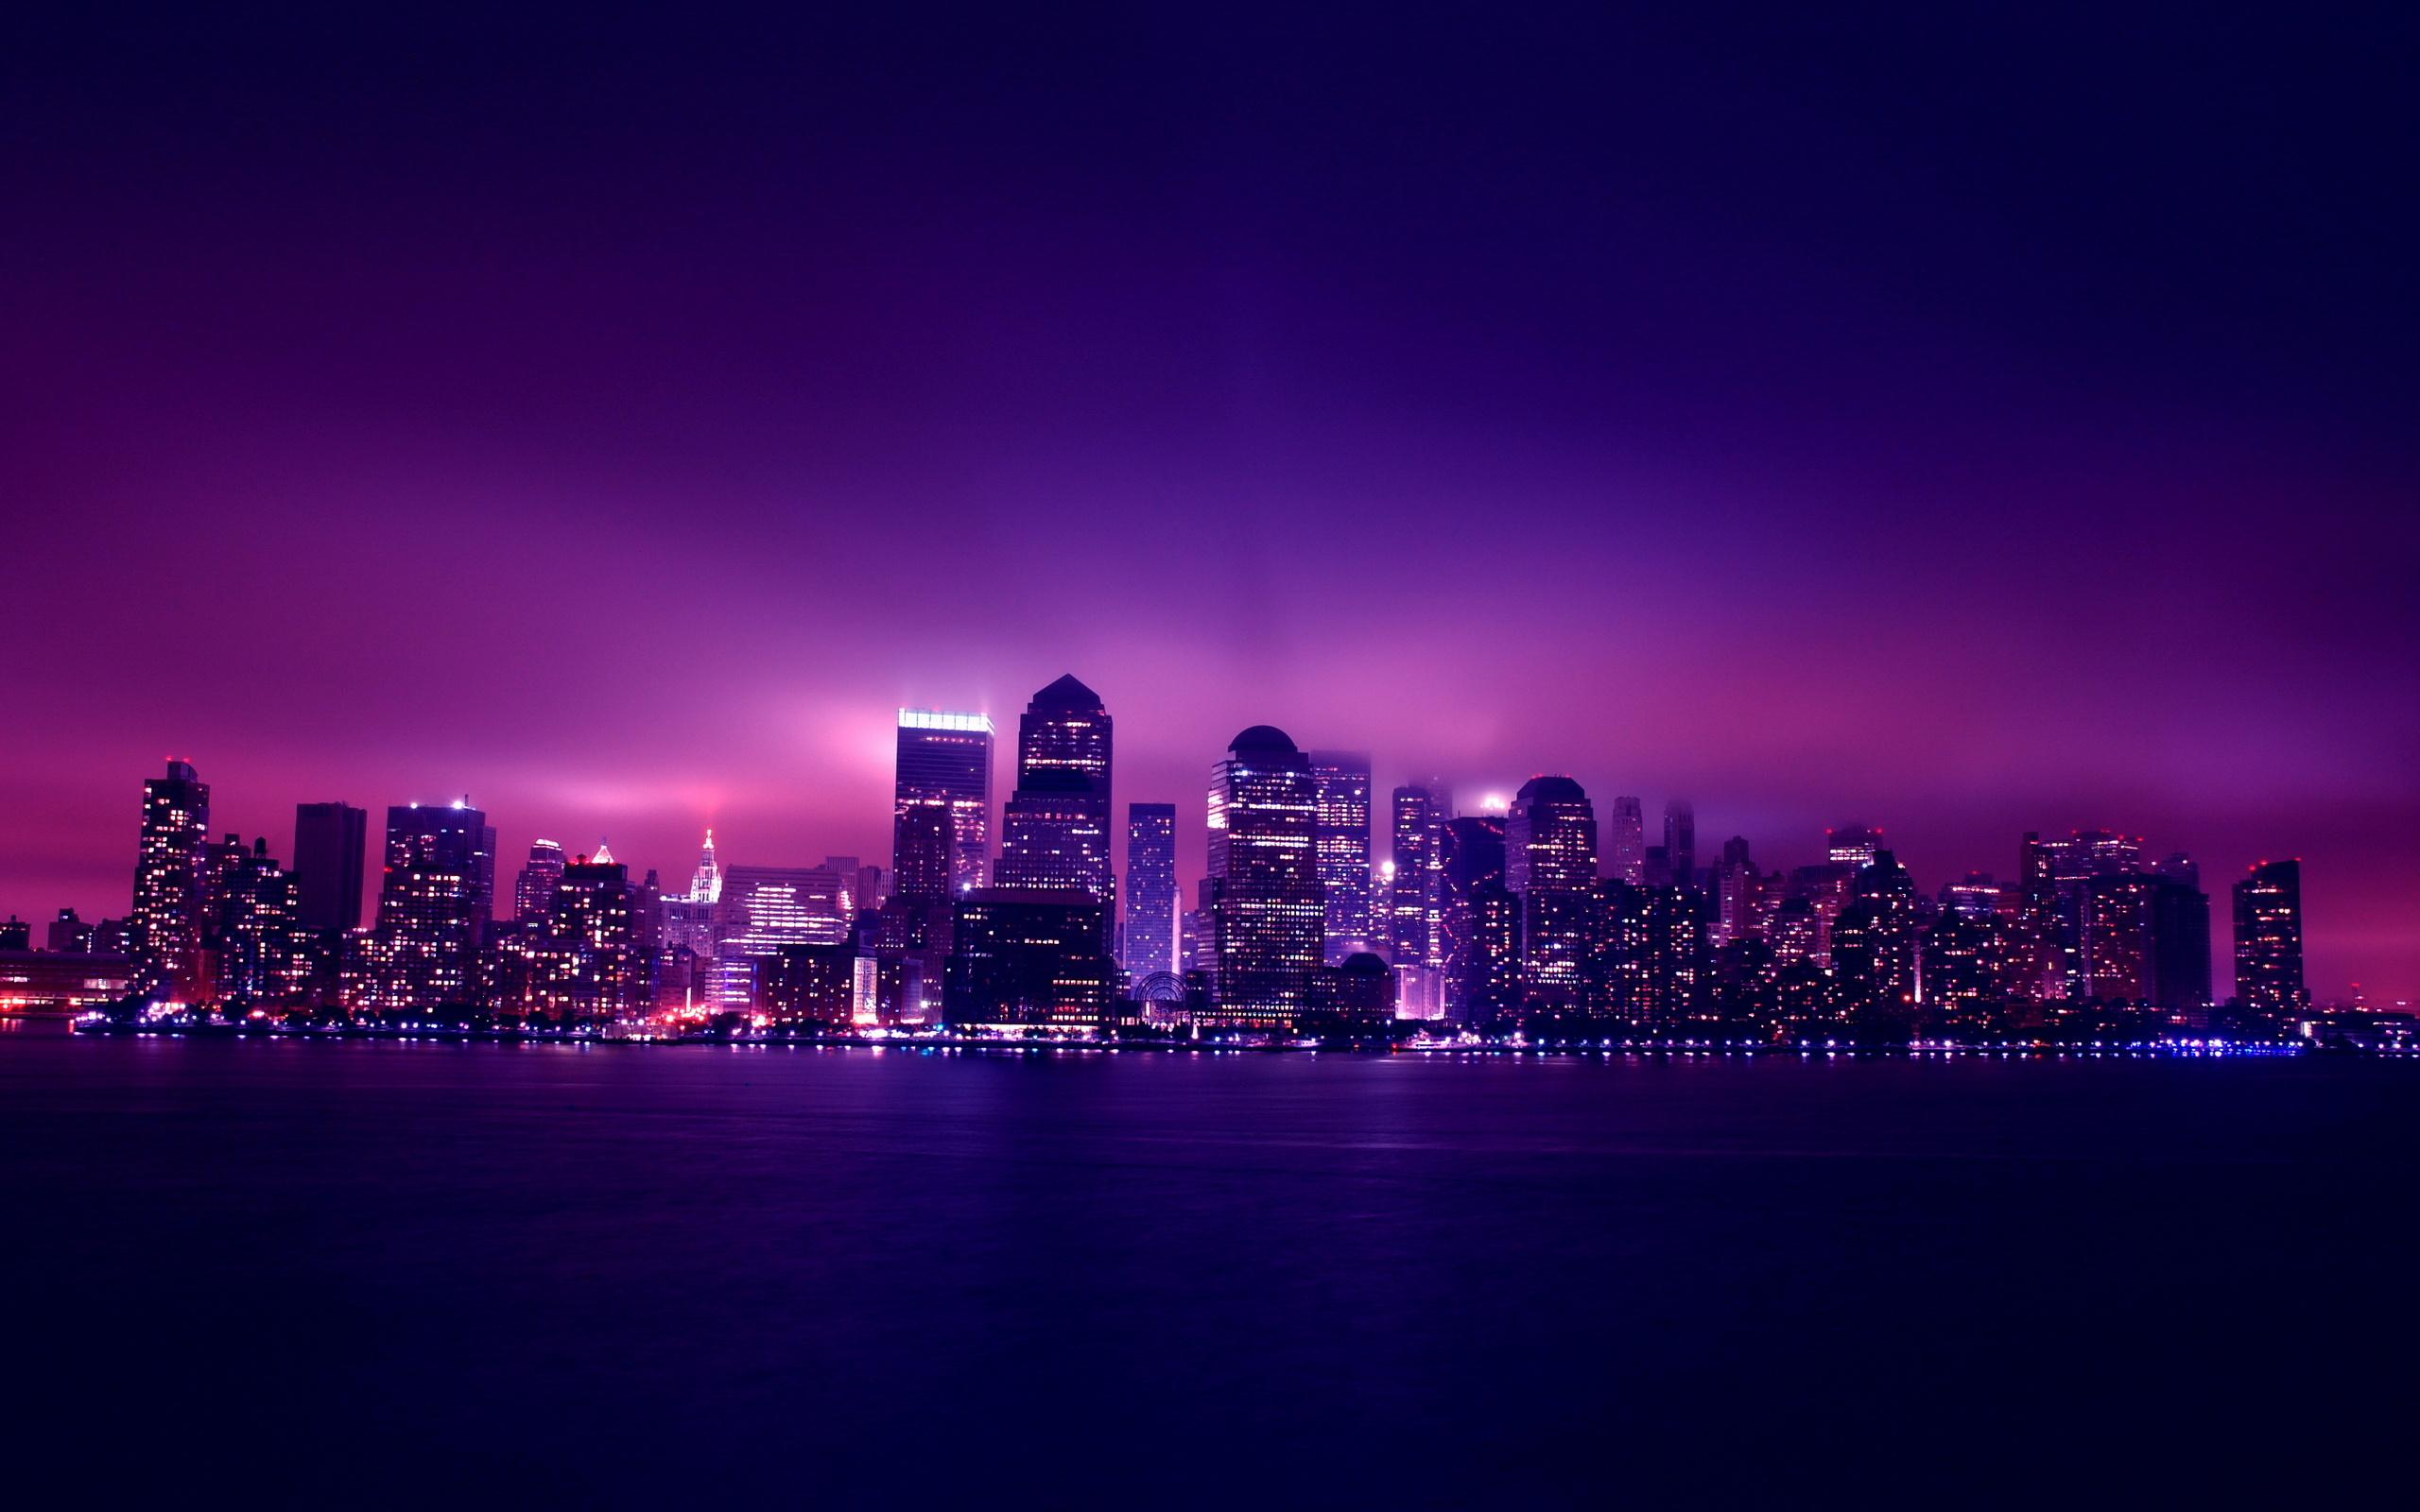 Aesthetic City Computer Wallpapers Top Free Aesthetic City